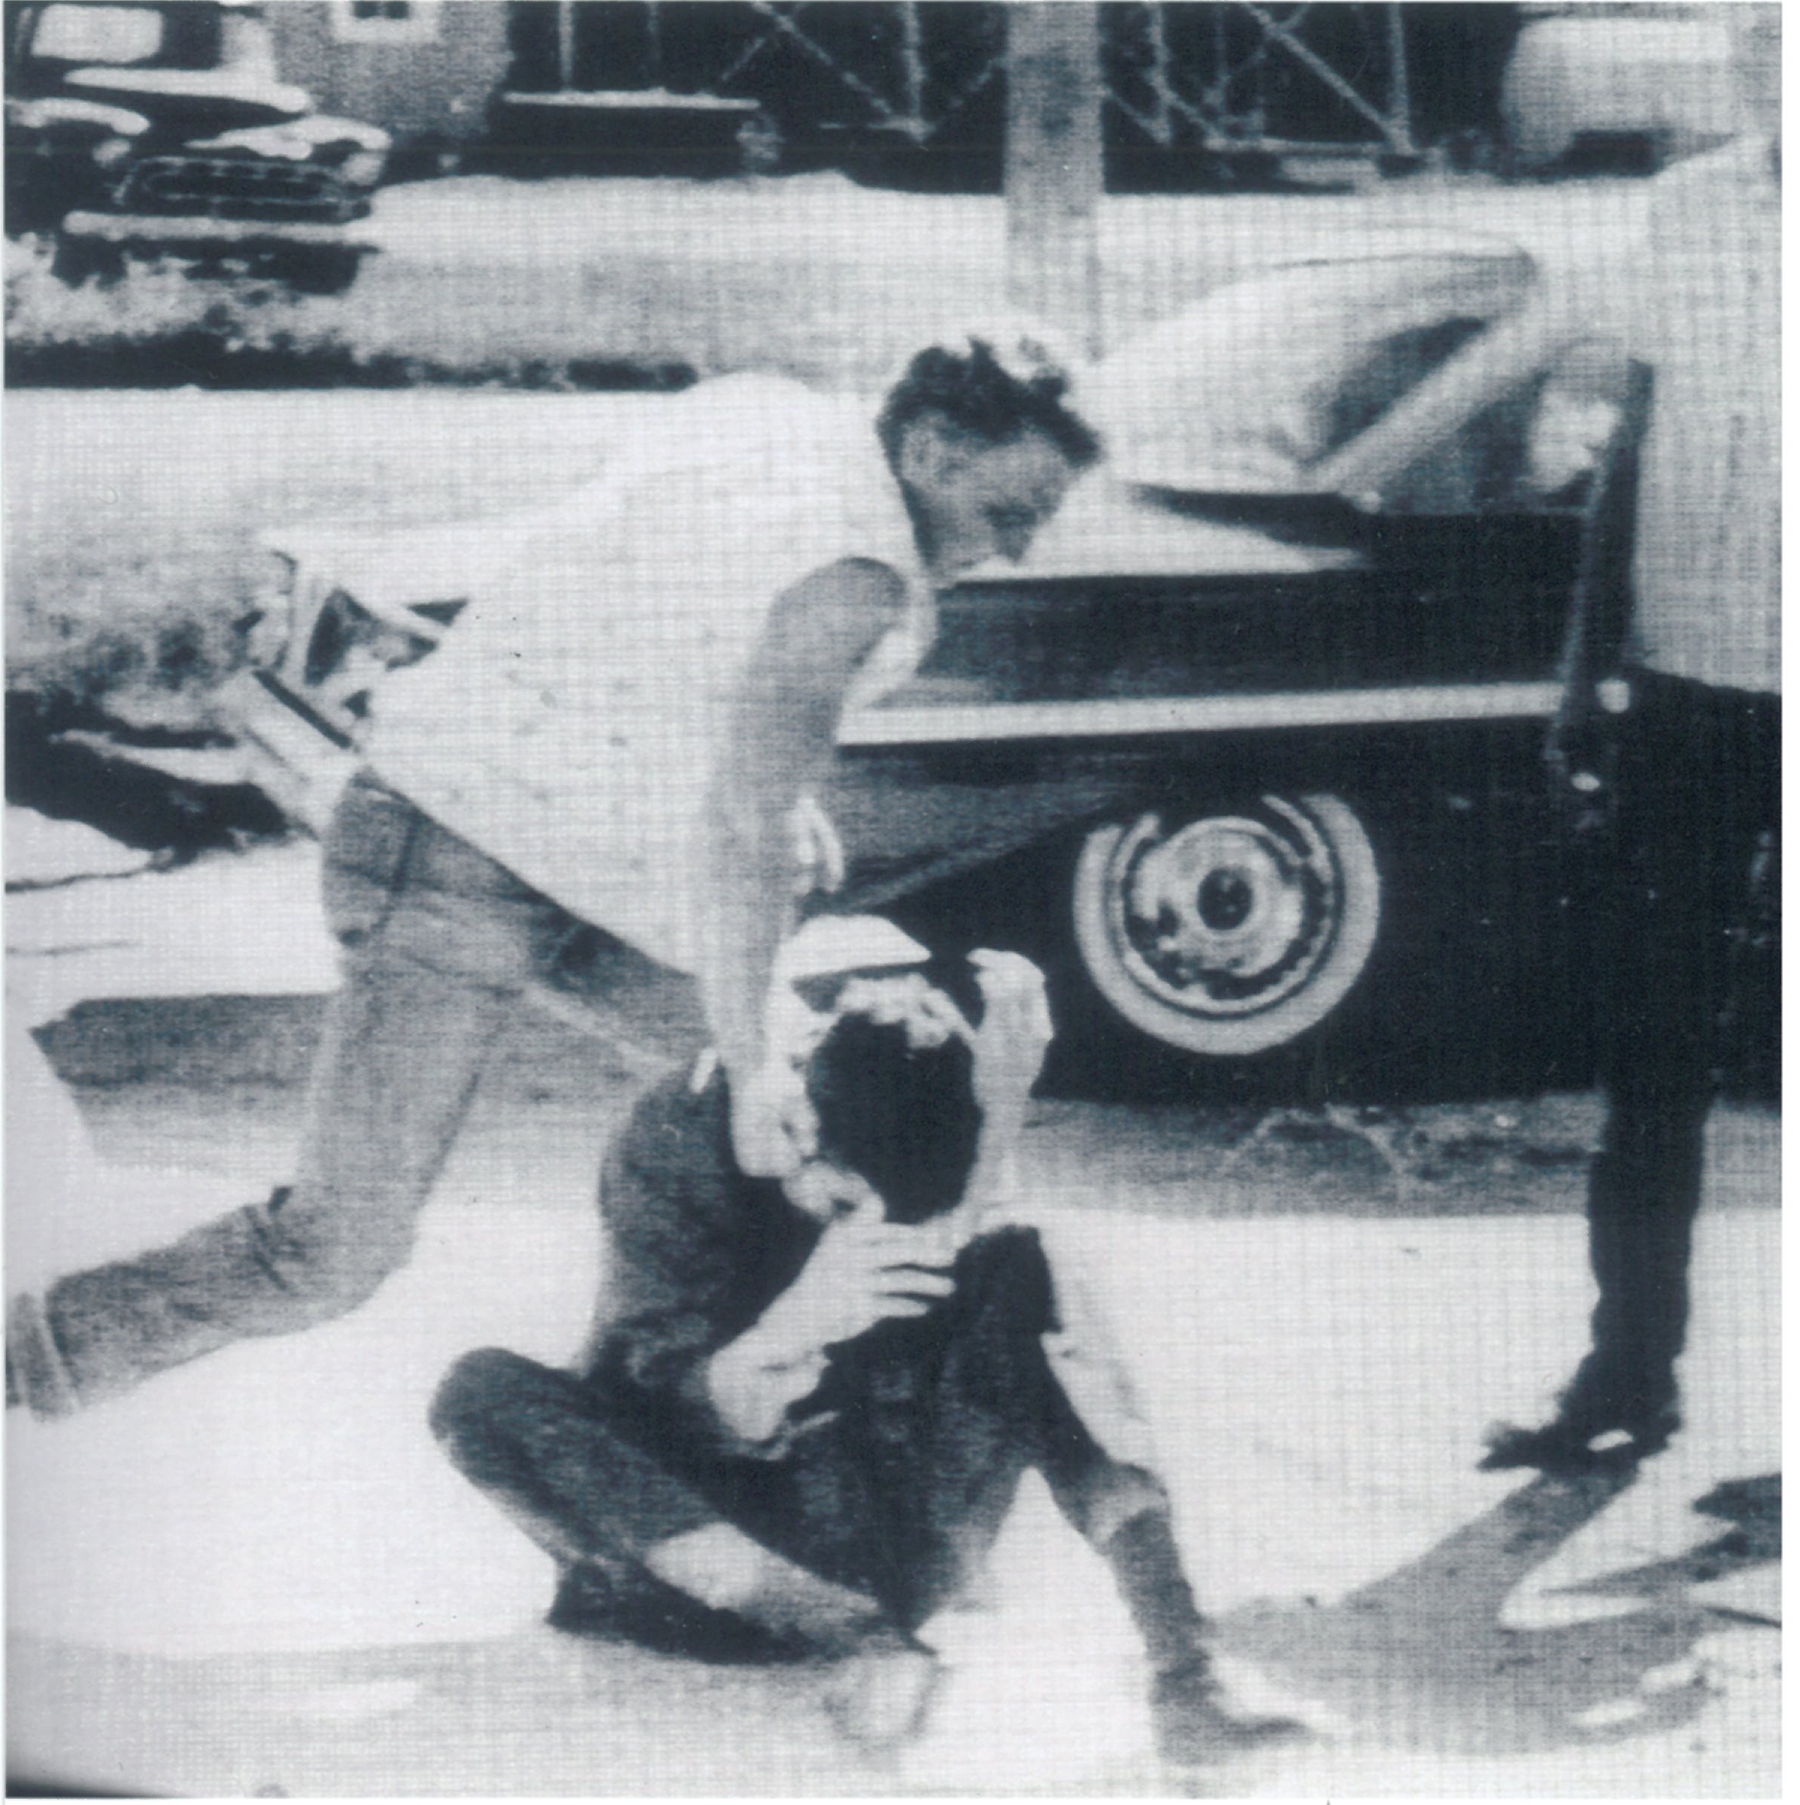 White supremacists pull Tom Hayden from a stopped car and beat him in McComb,  Mississippi, 1961. Image credit: Tom Hayden Papers held at the University of Michigan Library